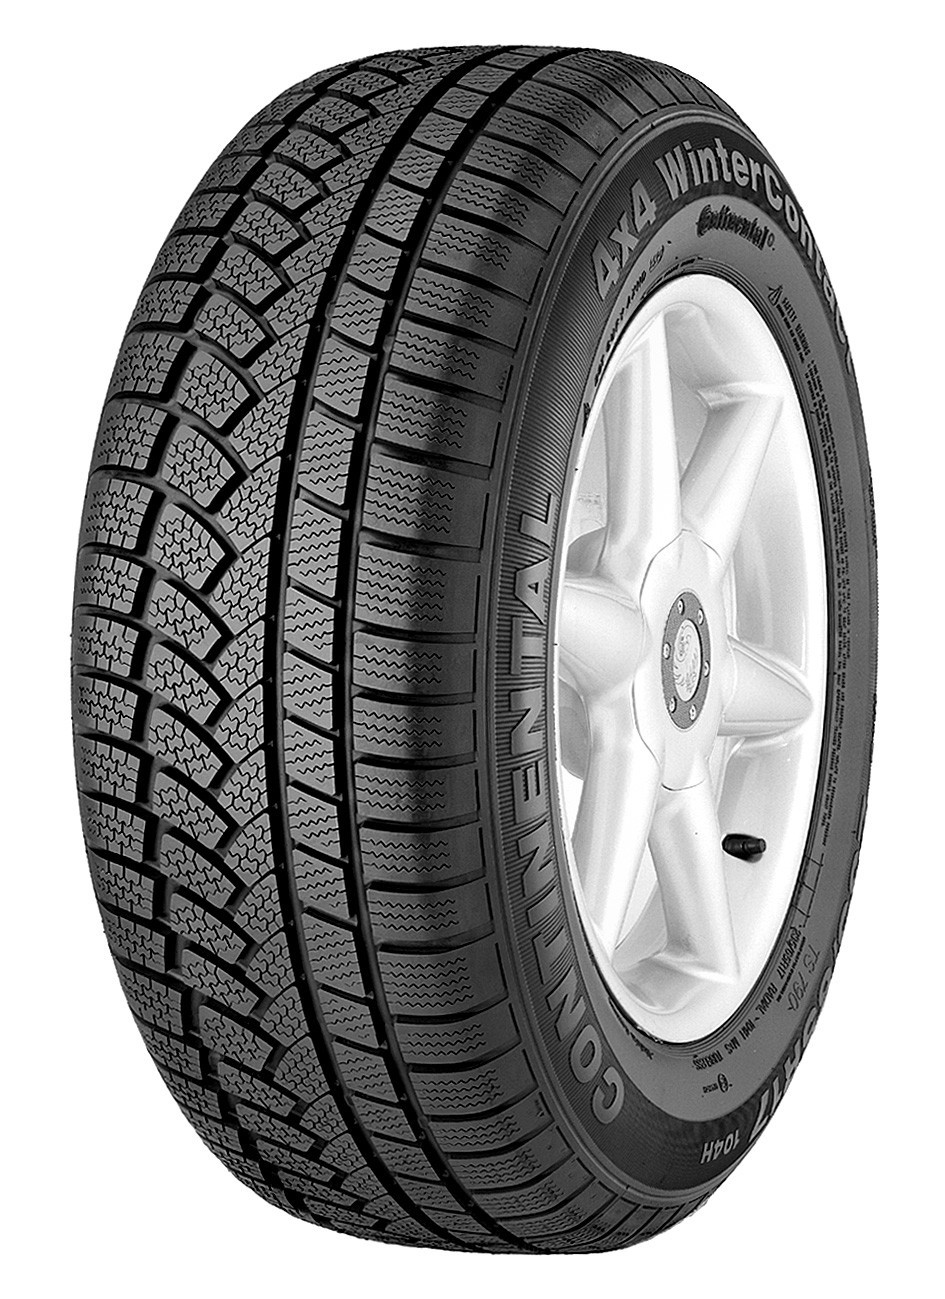 265/60 R18 [110] H Conti Winter Contact 4X4 MO - CONTINENTAL